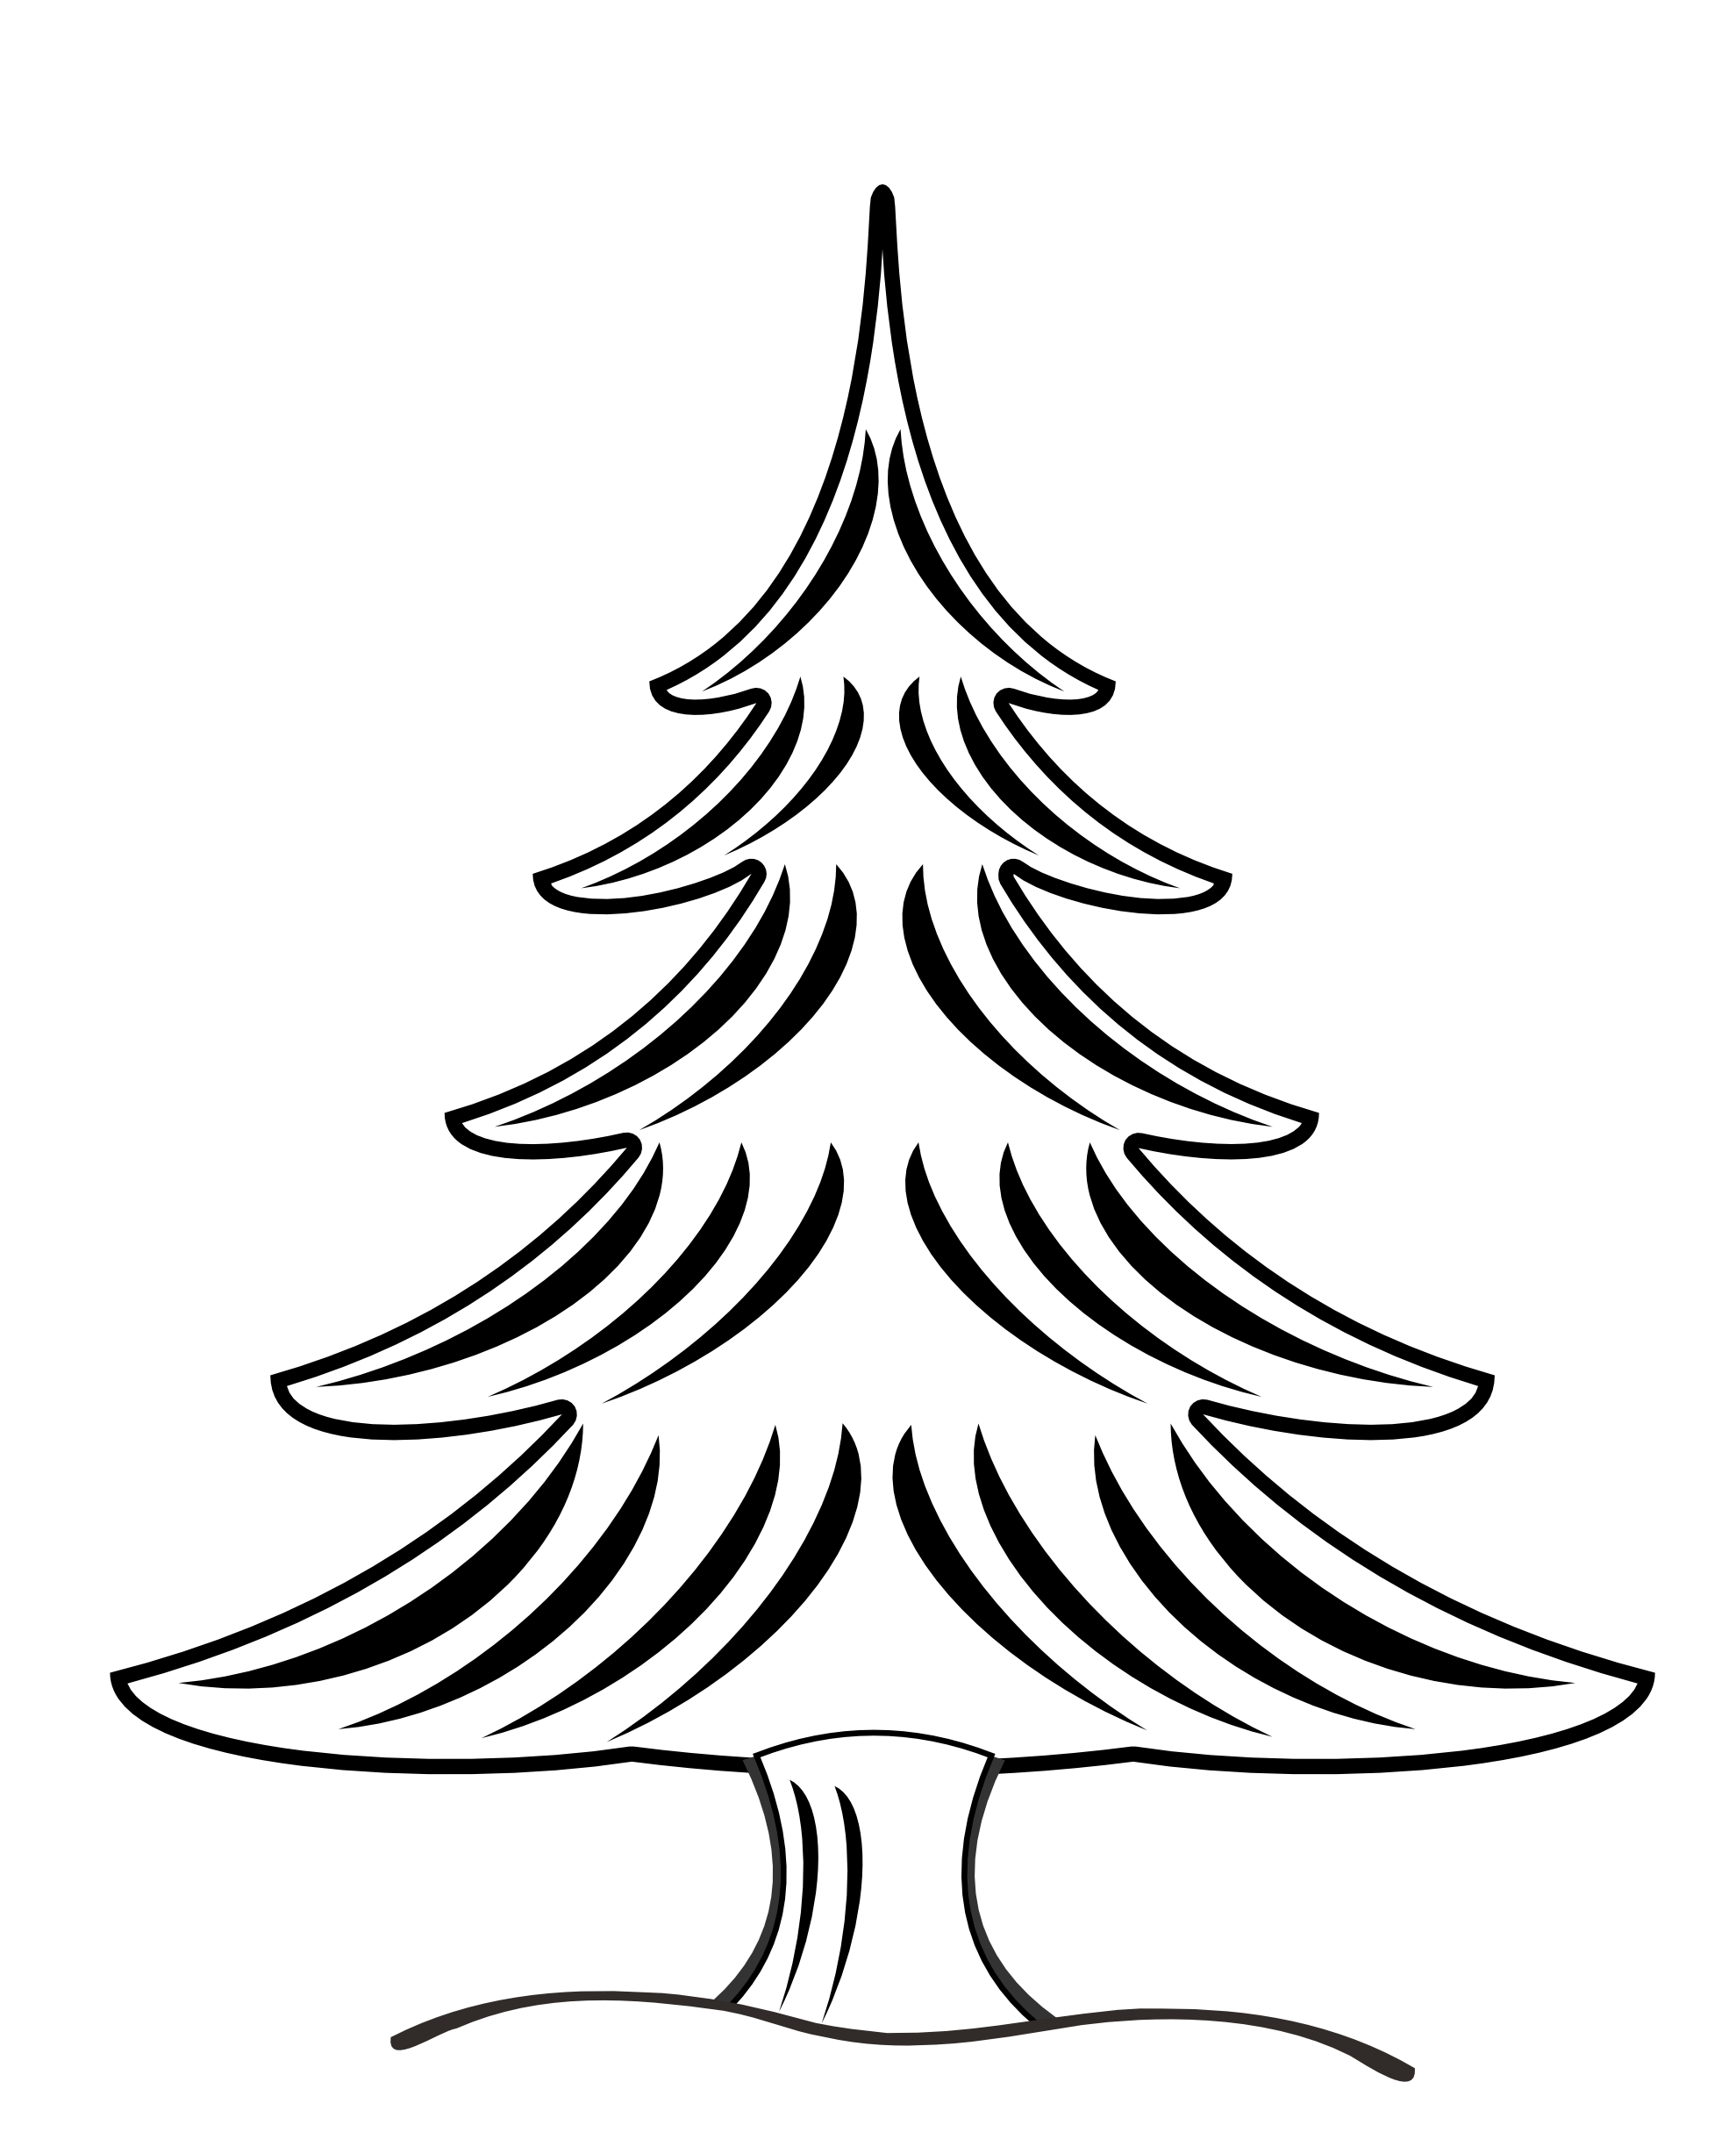 christmas tree clipart black and white abstract